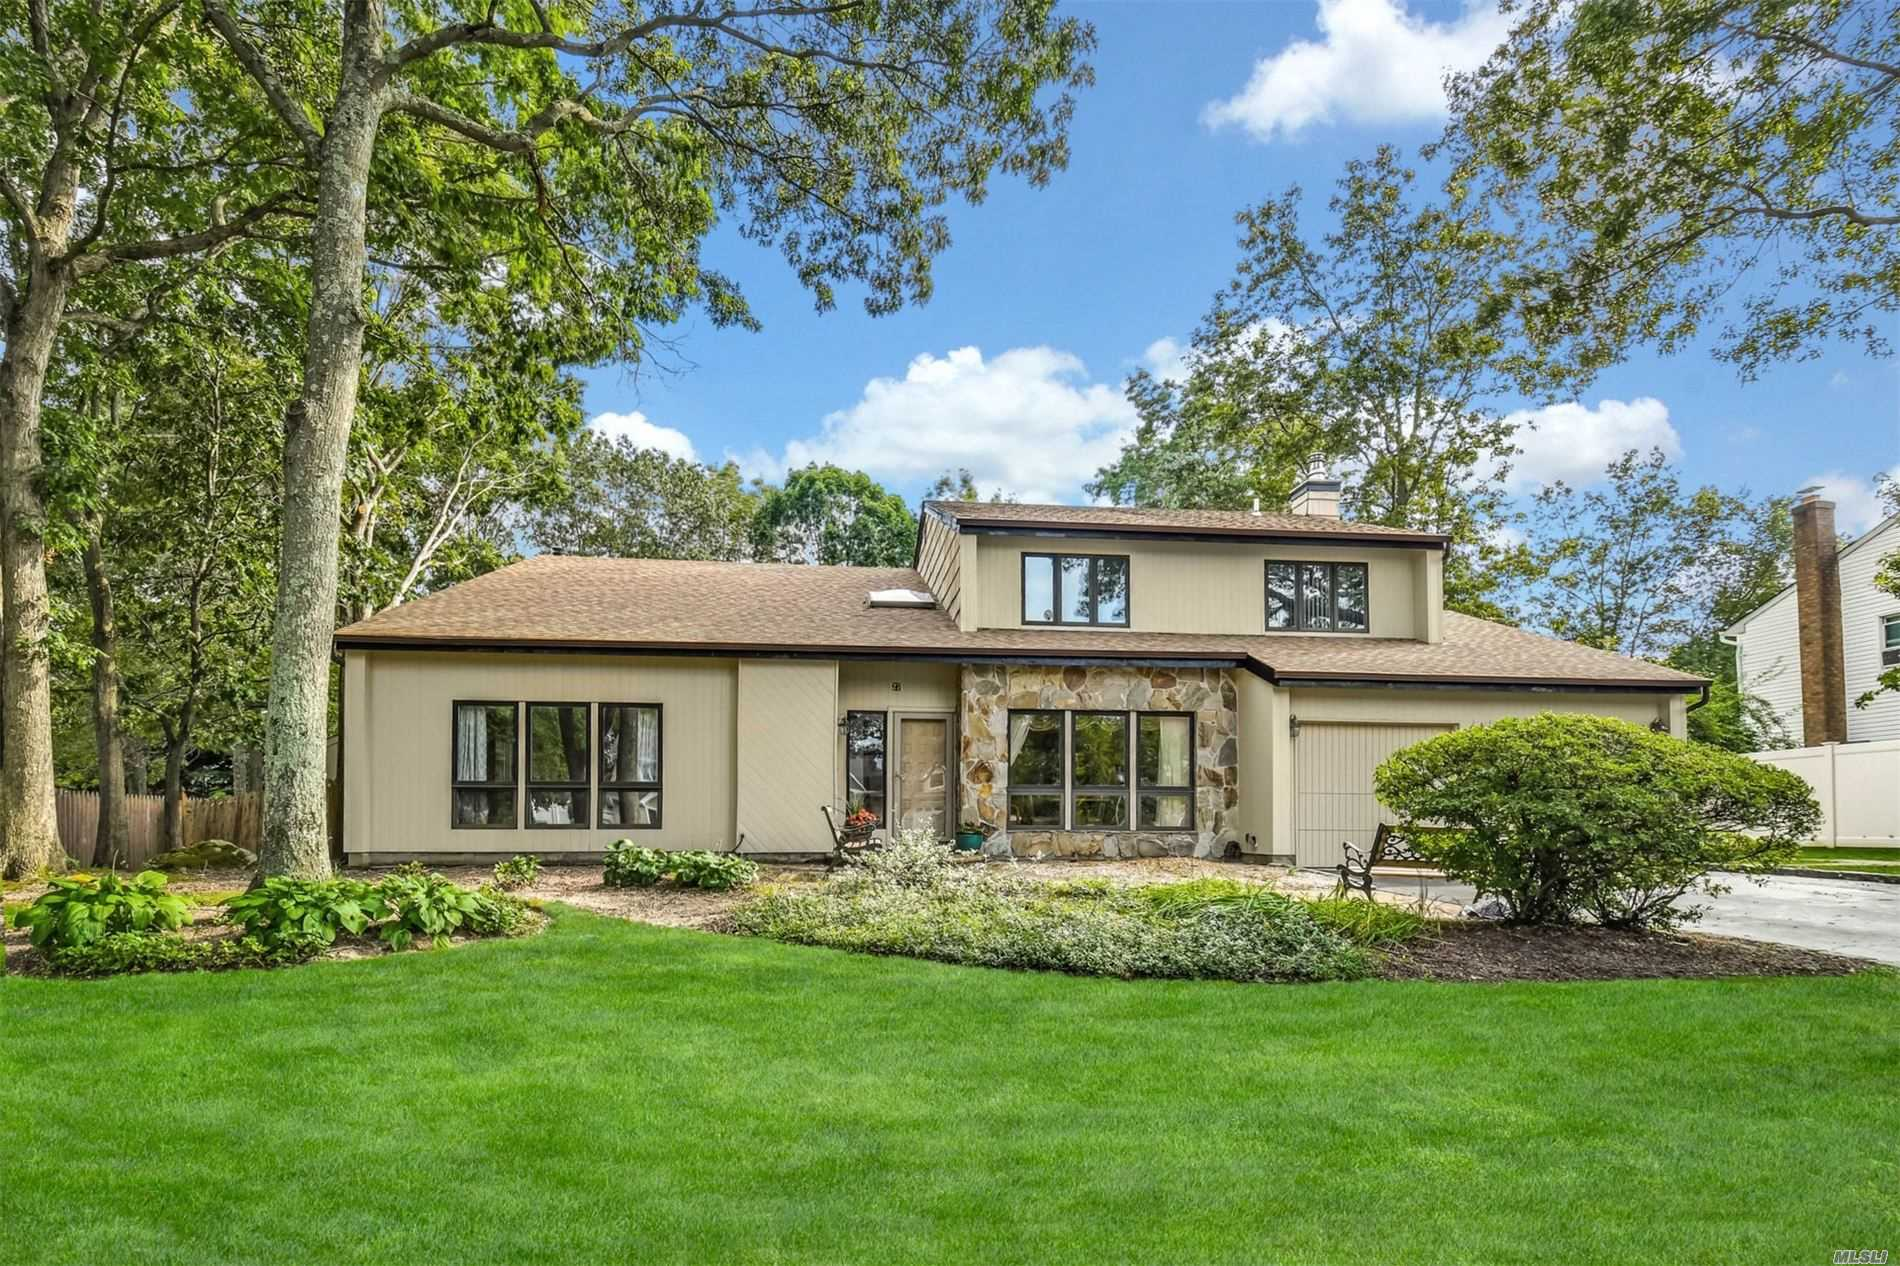 27 Jill Dr - Commack, New York